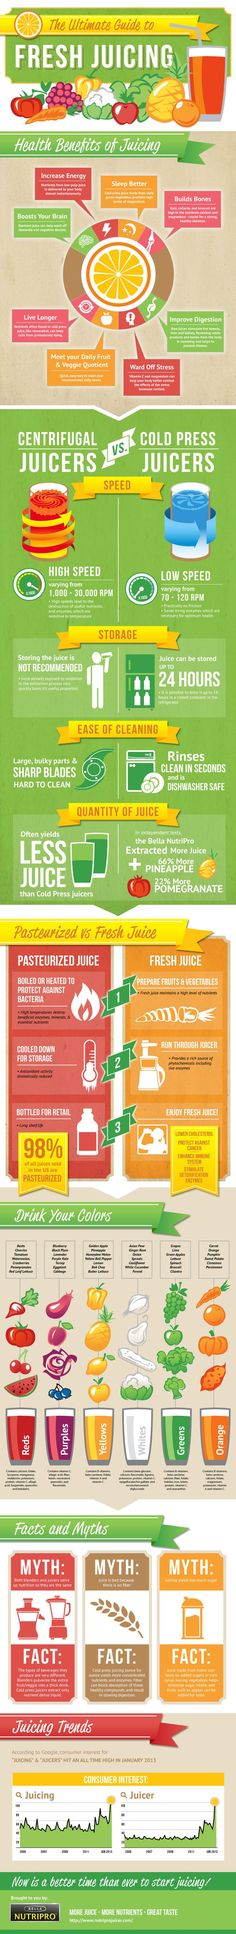 Fresh Juicing – The Ultimate Guide (Infographic) -  #Juicing